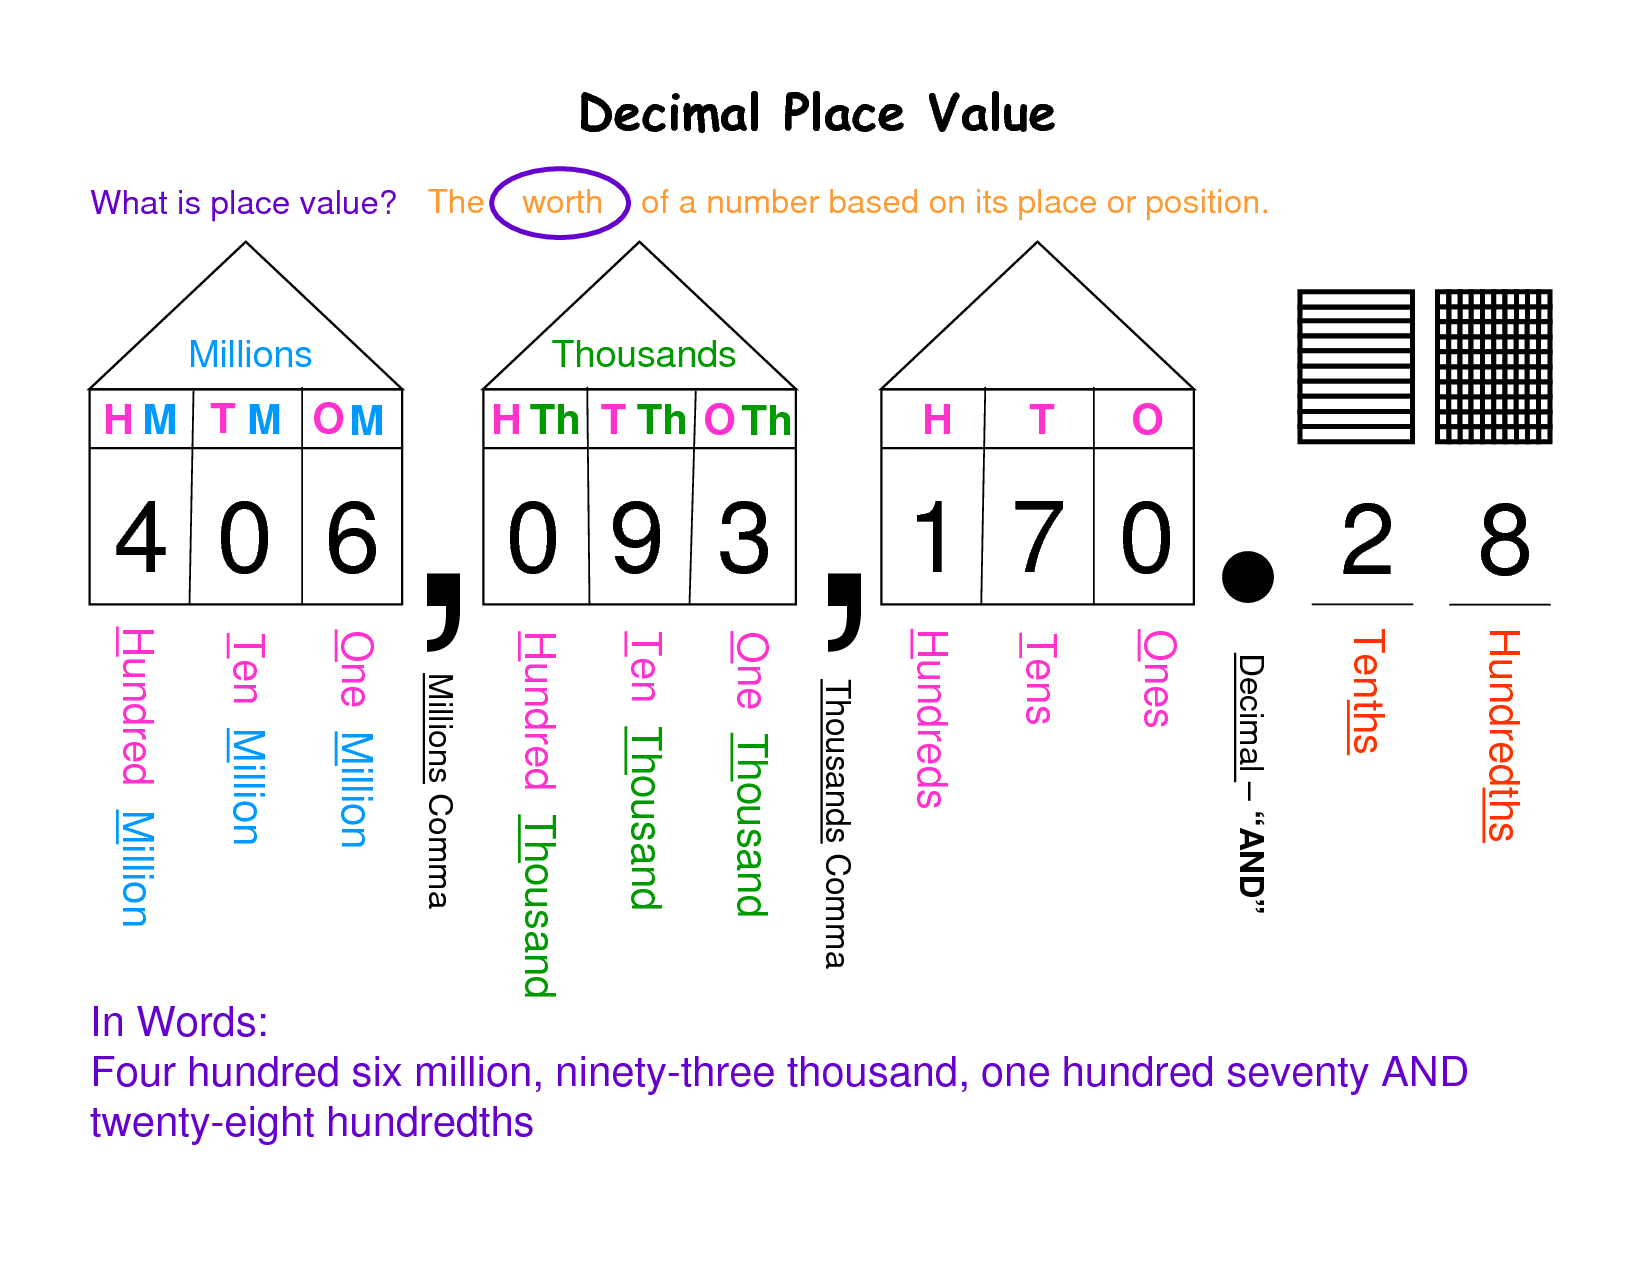 Full Size Decimal Place Value Chart Google Image Result For Http